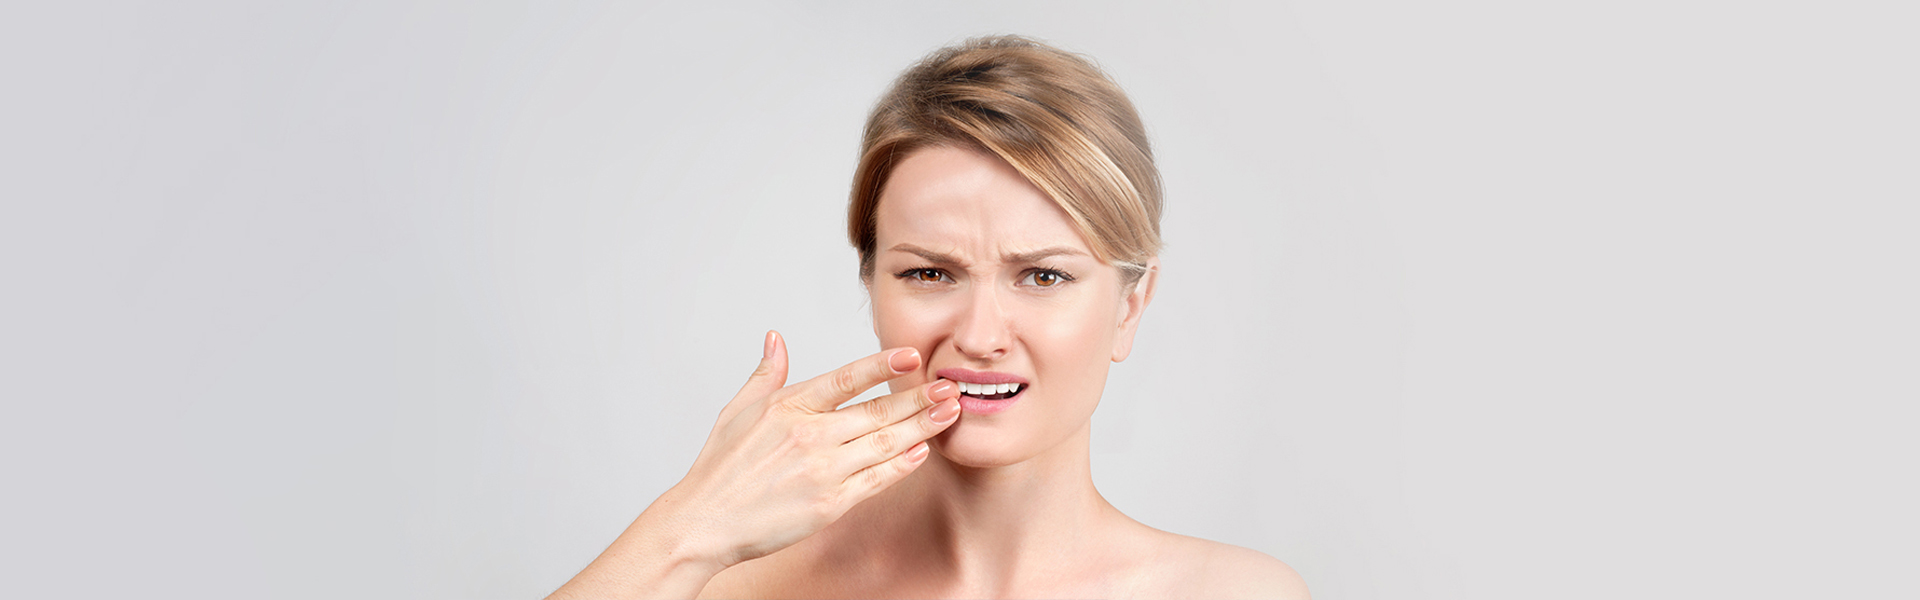 Dentists Recommend Wisdom Tooth Removal Surgery If They May Cause Problems in the Future